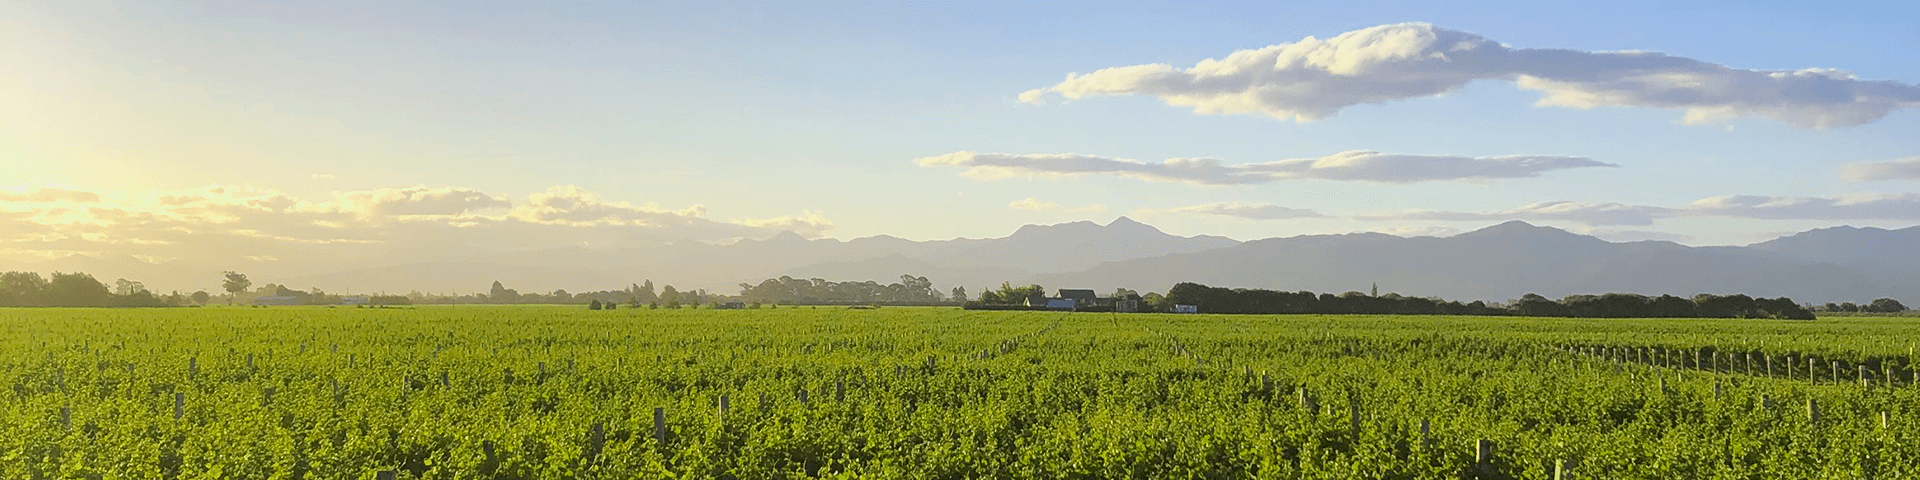 Field with vines in New Zealand 1920x480